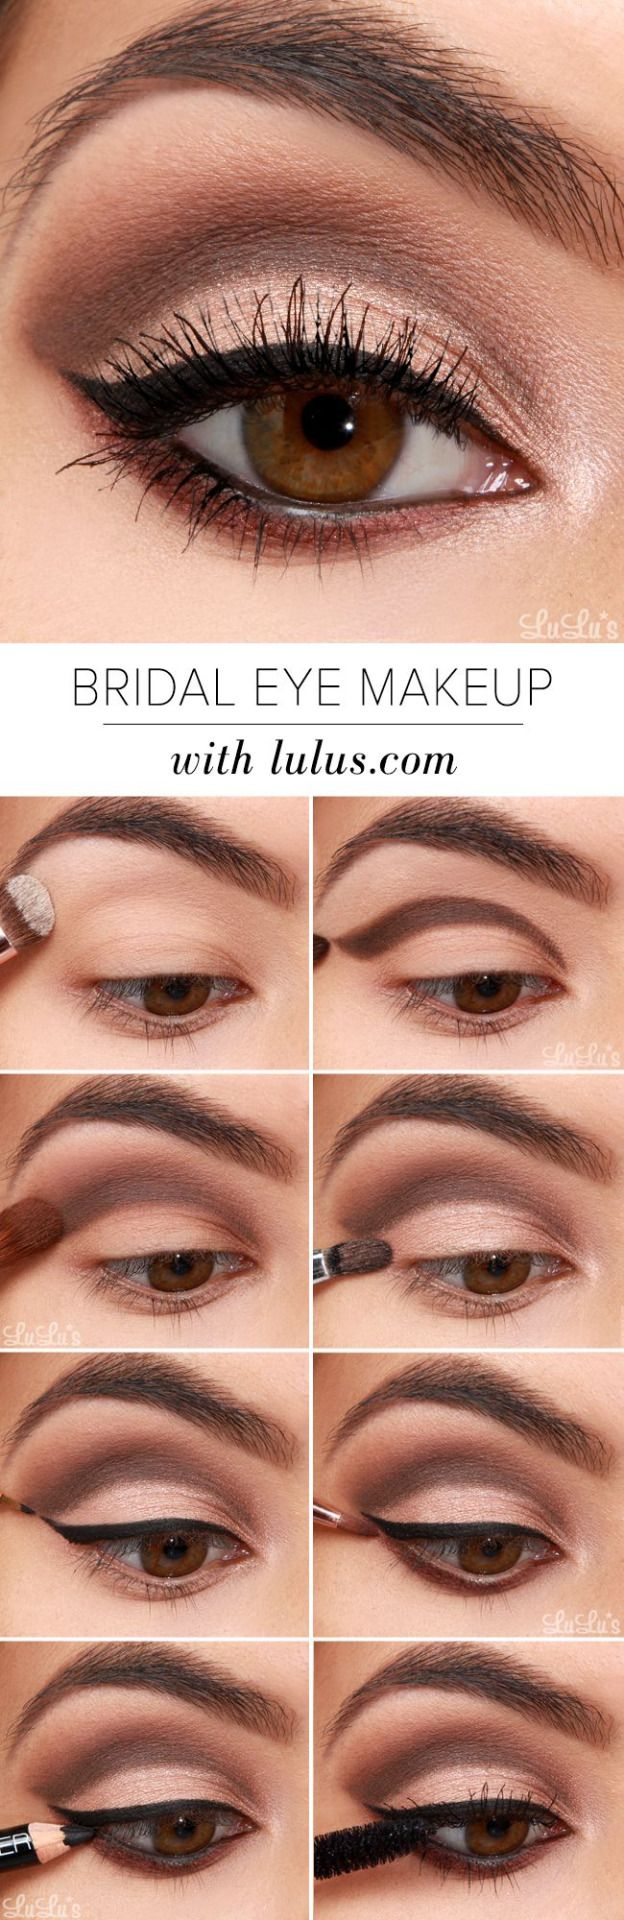 Makeup Fans - WE HEART IT: How-to Bridal Eye Makeup Tutorial